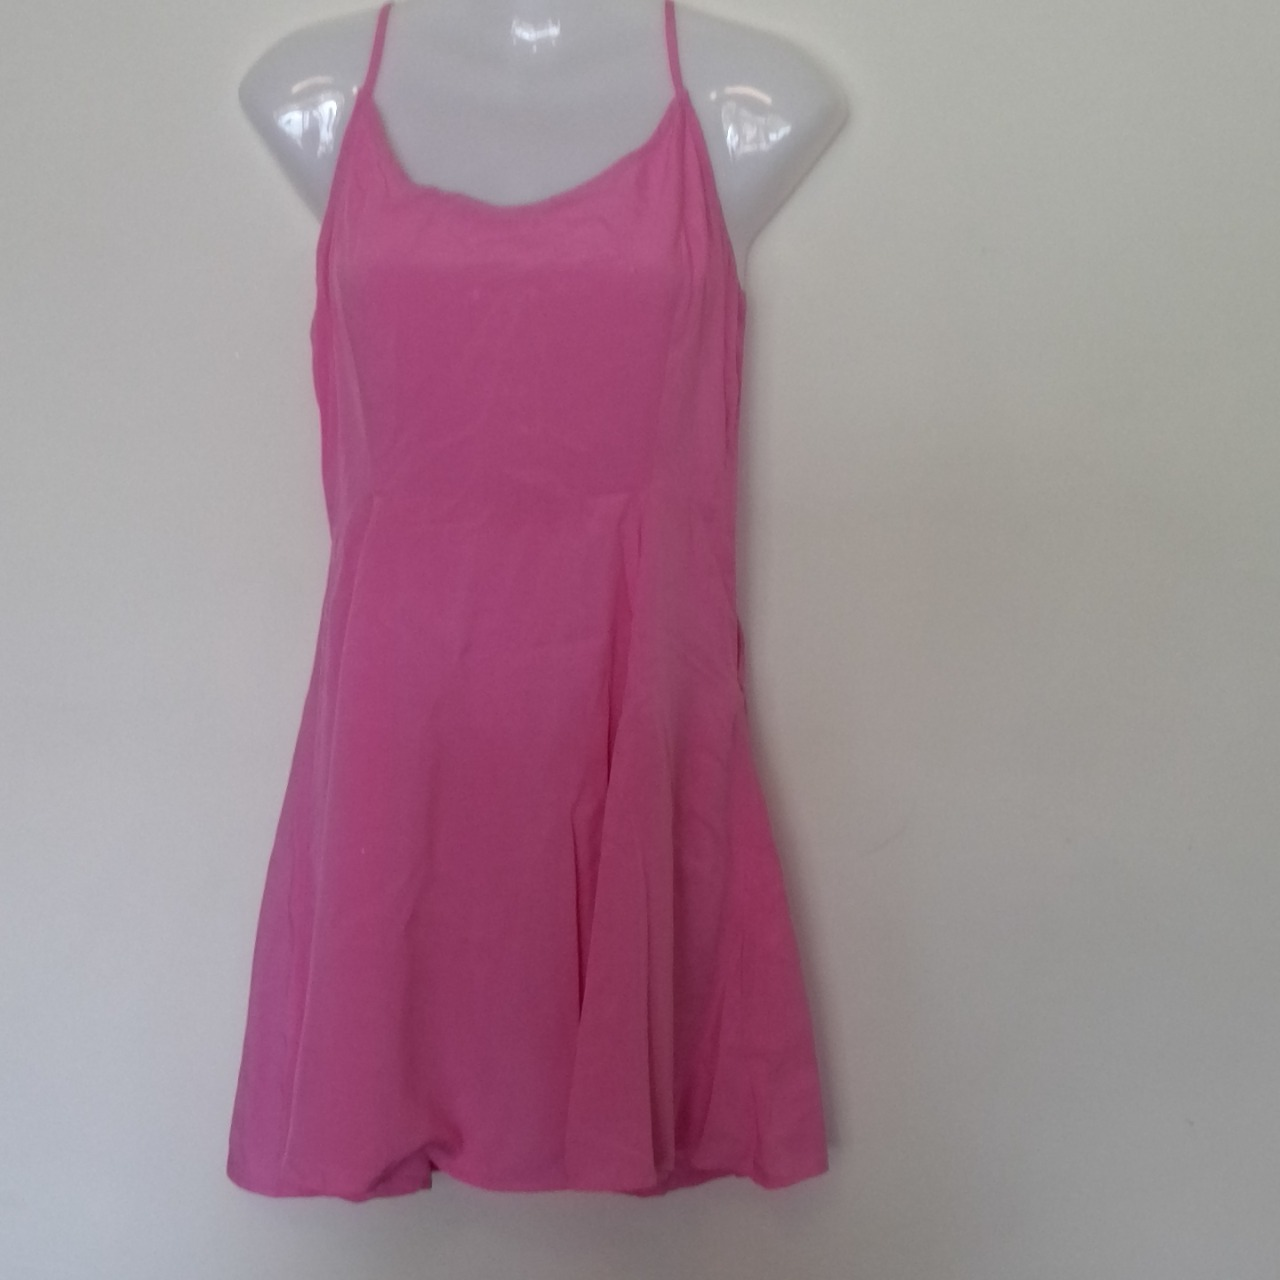 BNWT FOREVER 21 Womens Mini Summer Dress Pink  size 6